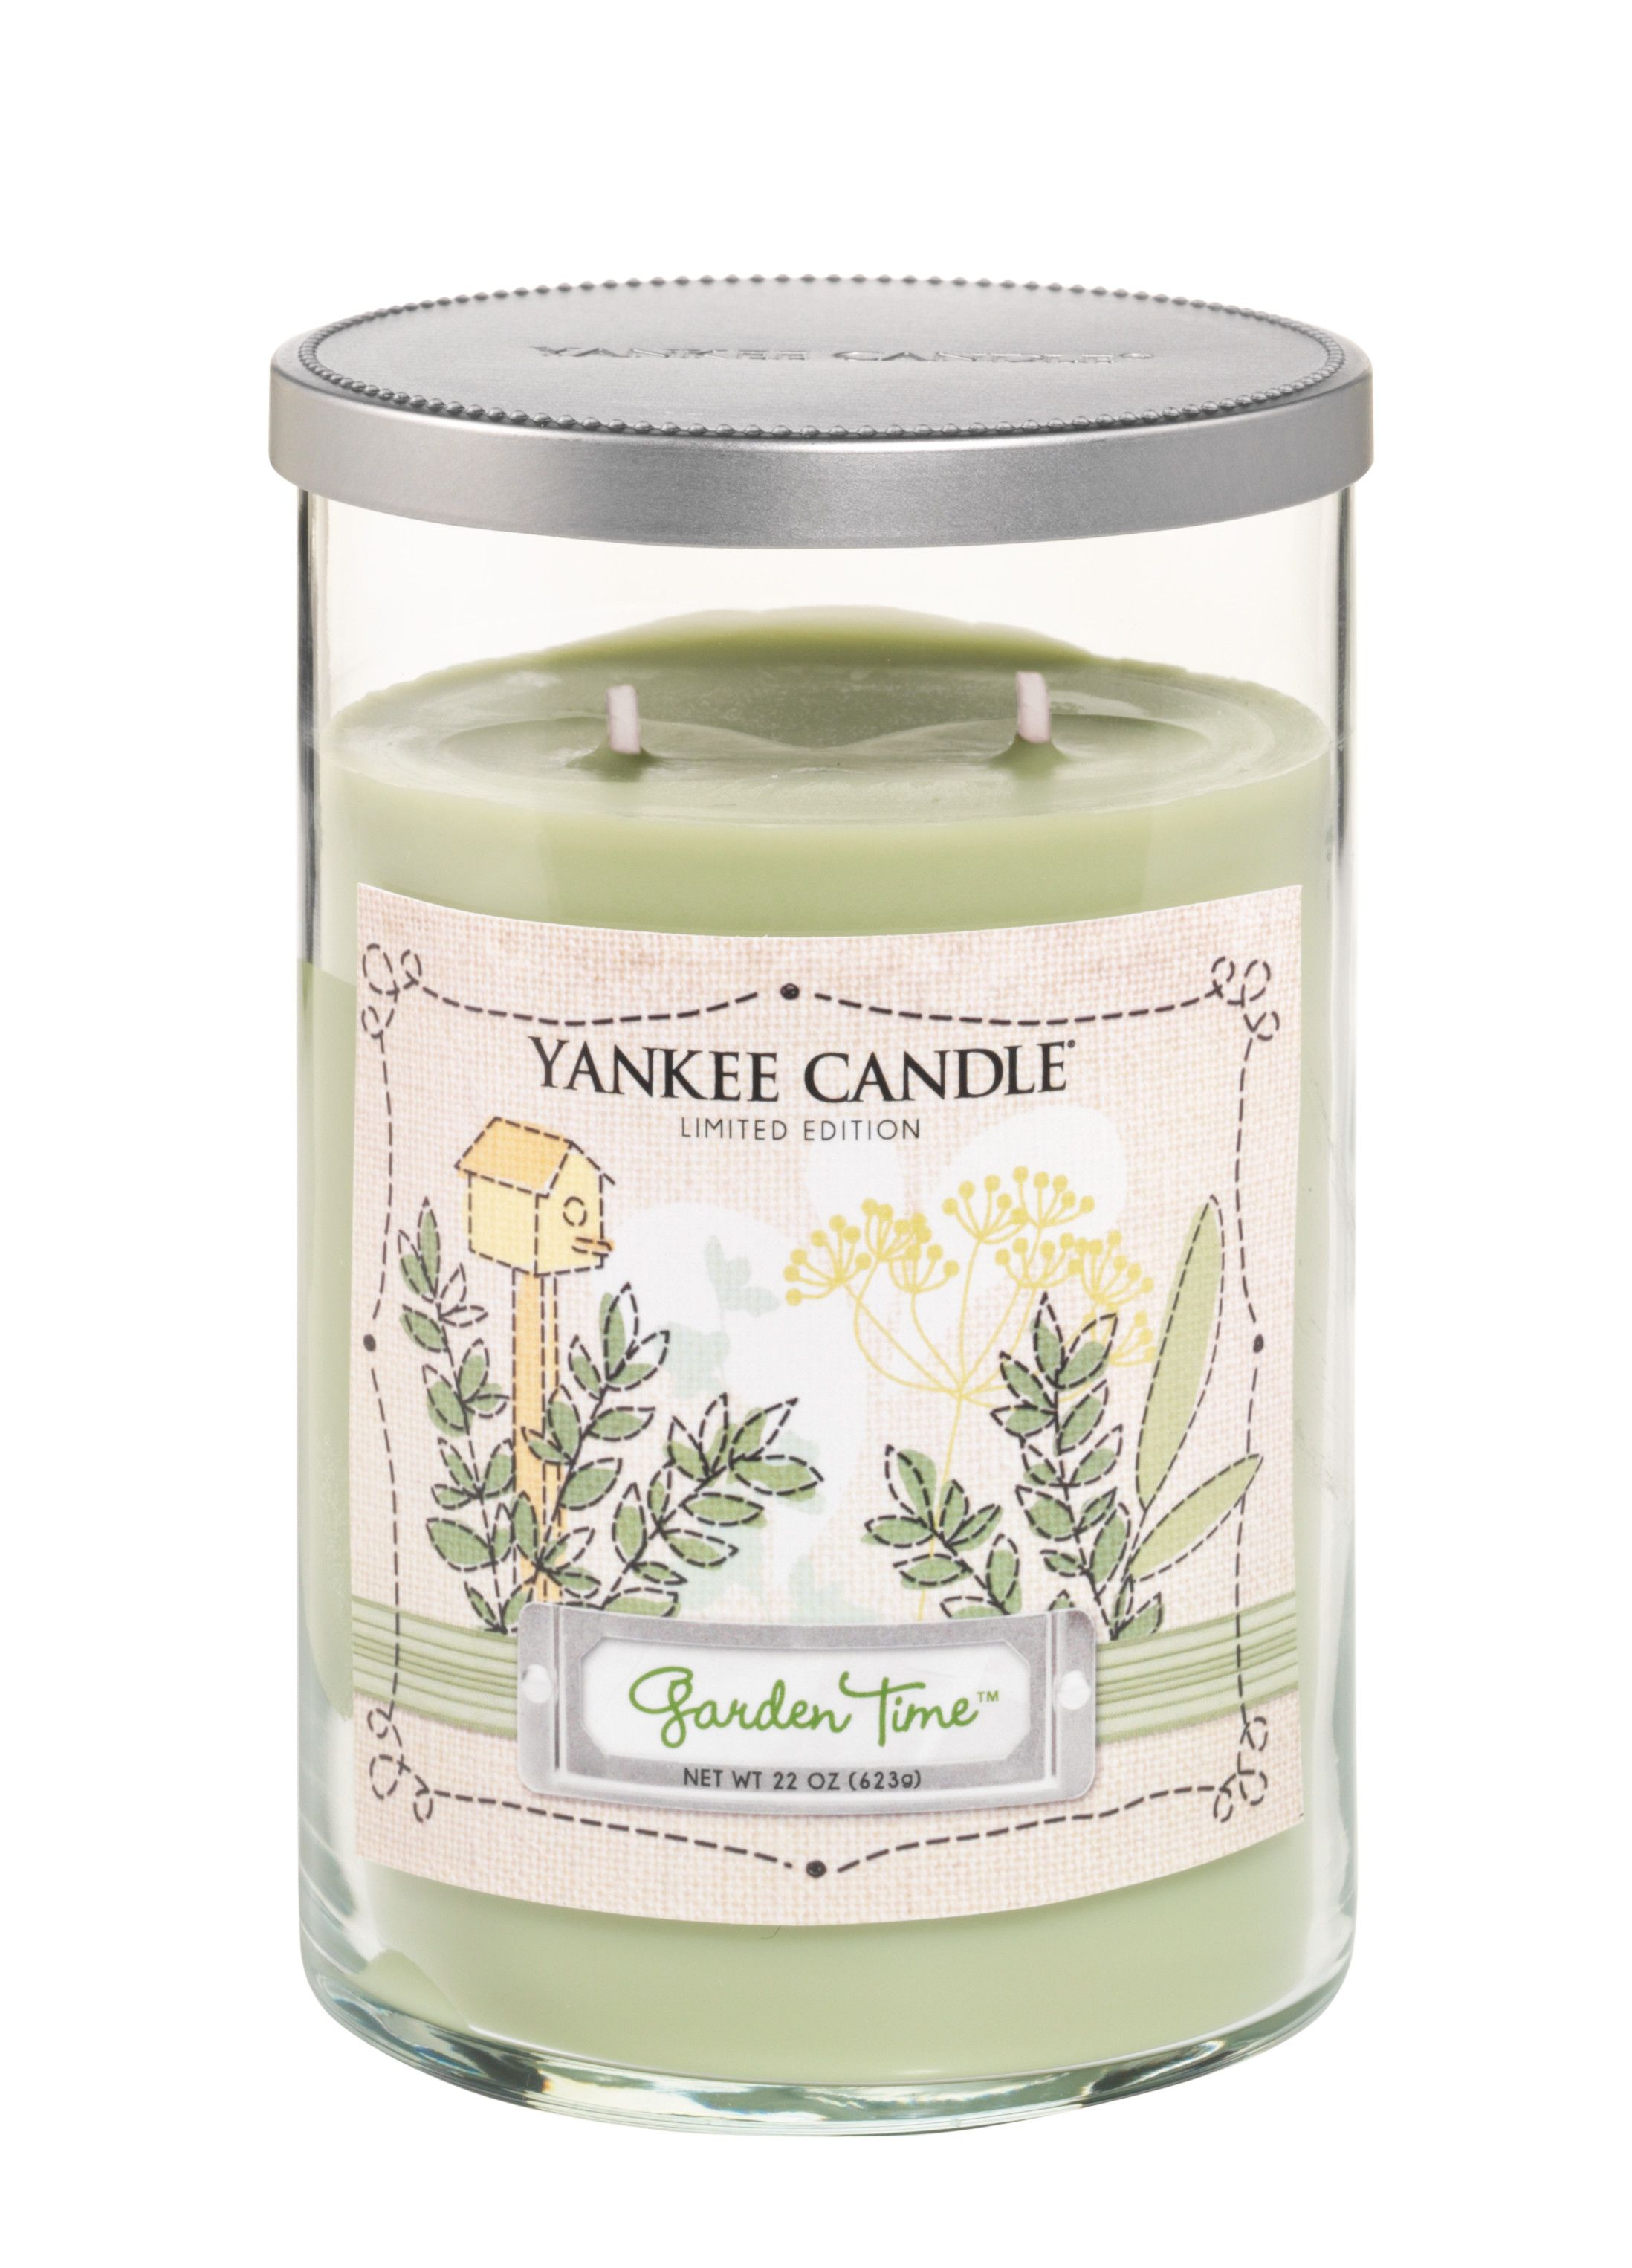 Garden time large tumbler 2 wick candle